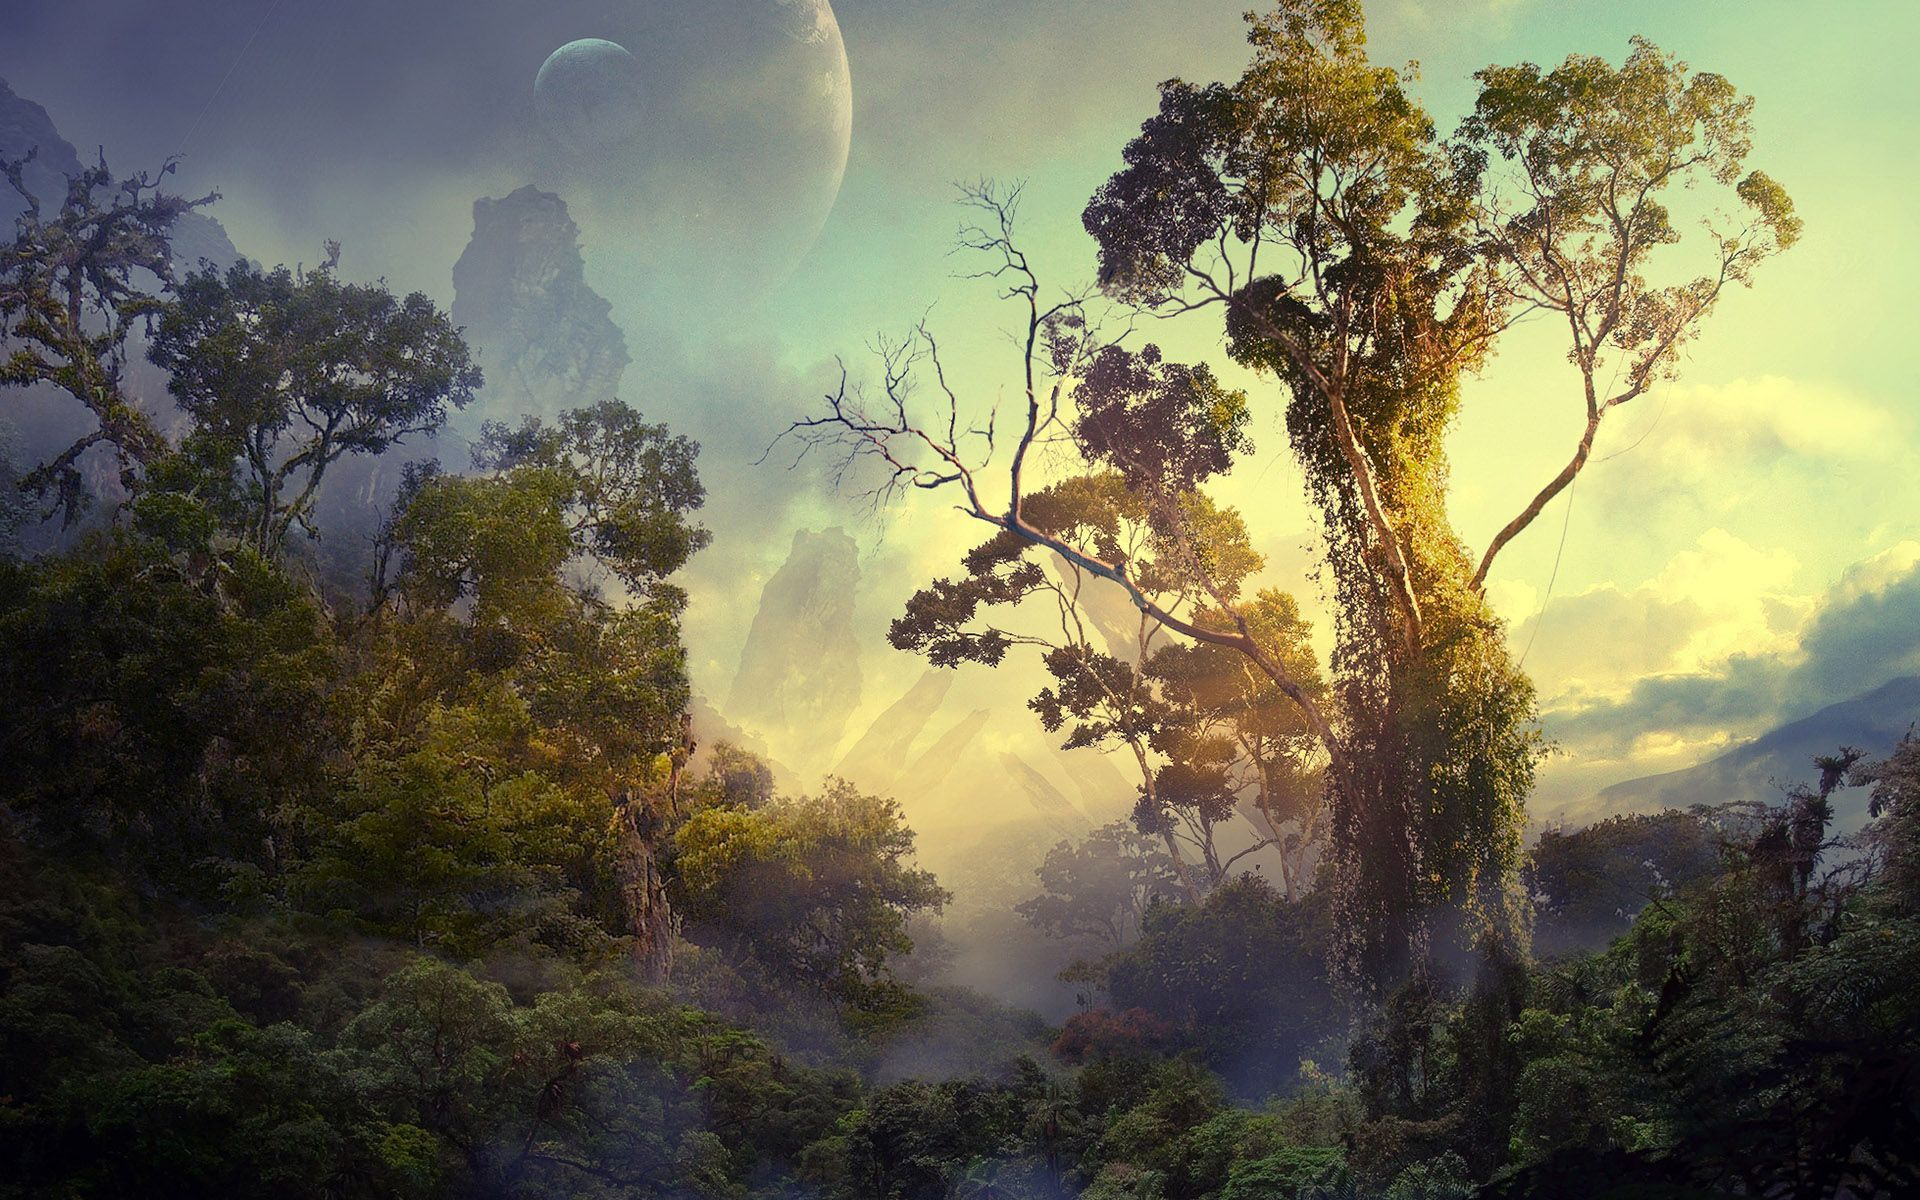 Jungle on a foreign planet